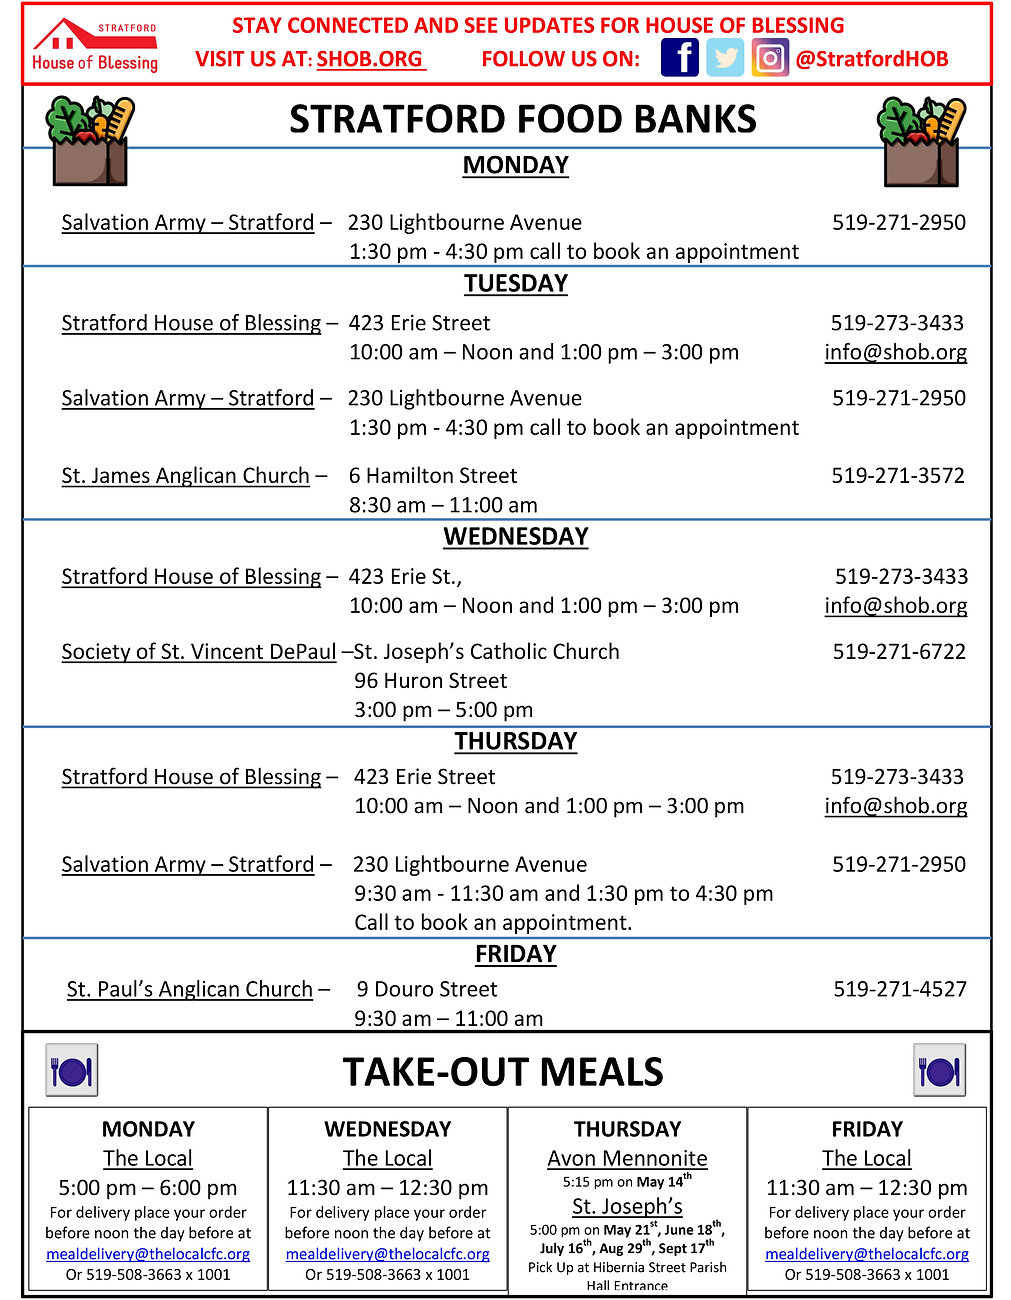 picture showing food bank locations and hours